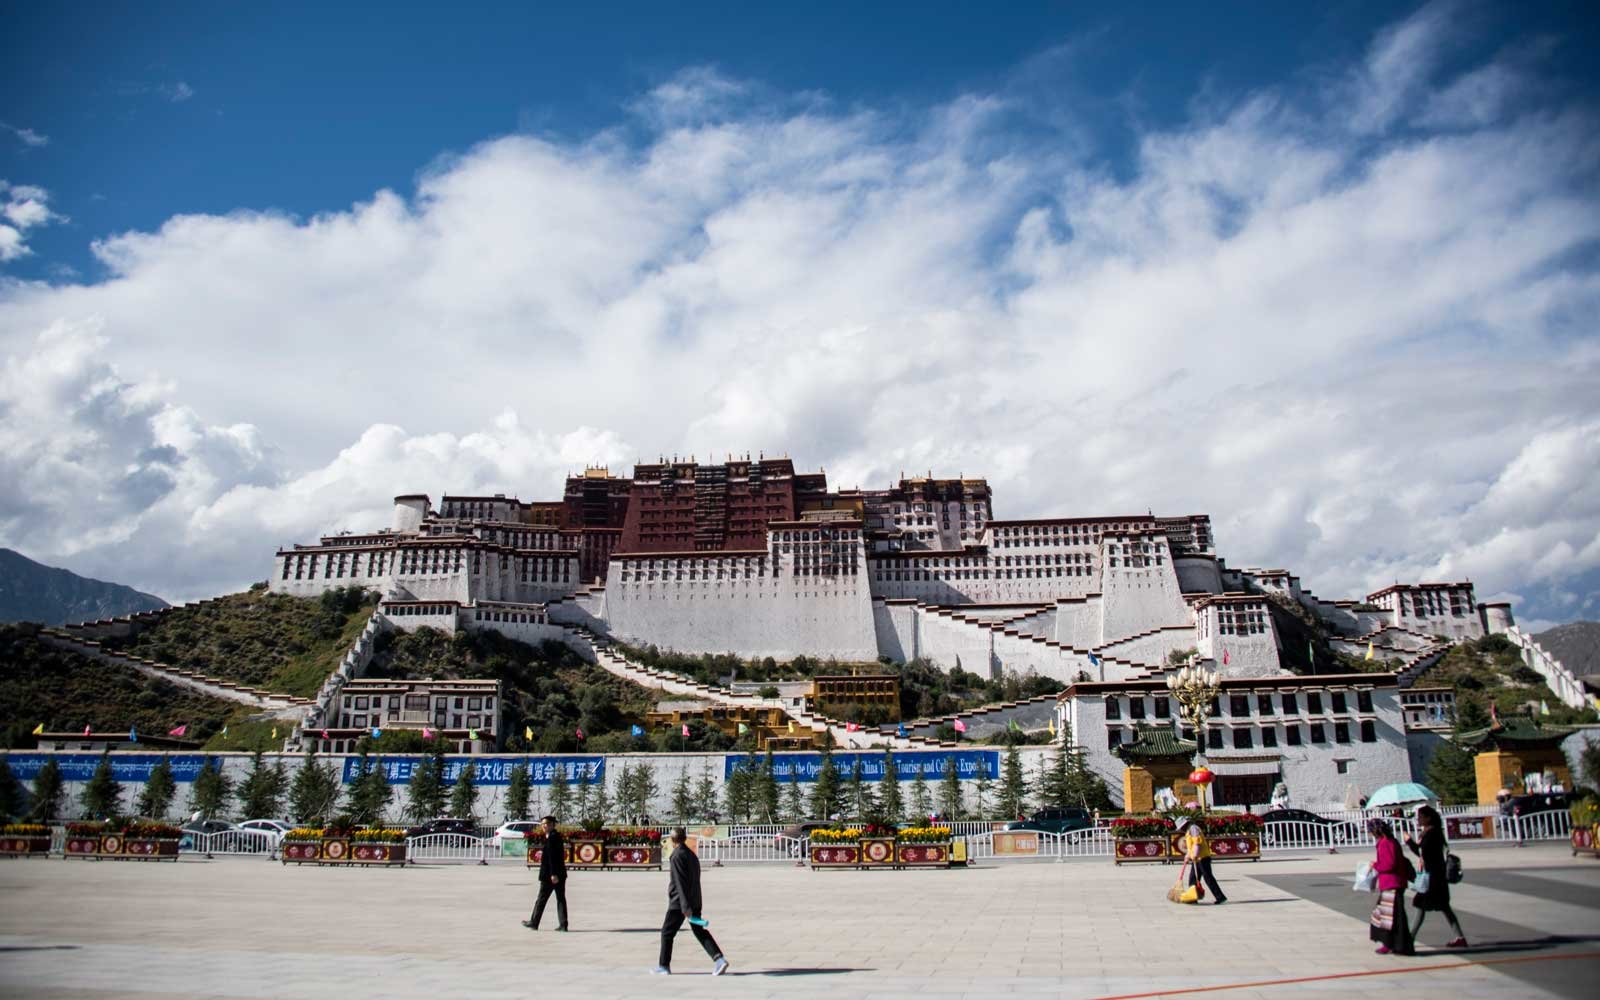 Visit the Winter Home of the Dalai Lama